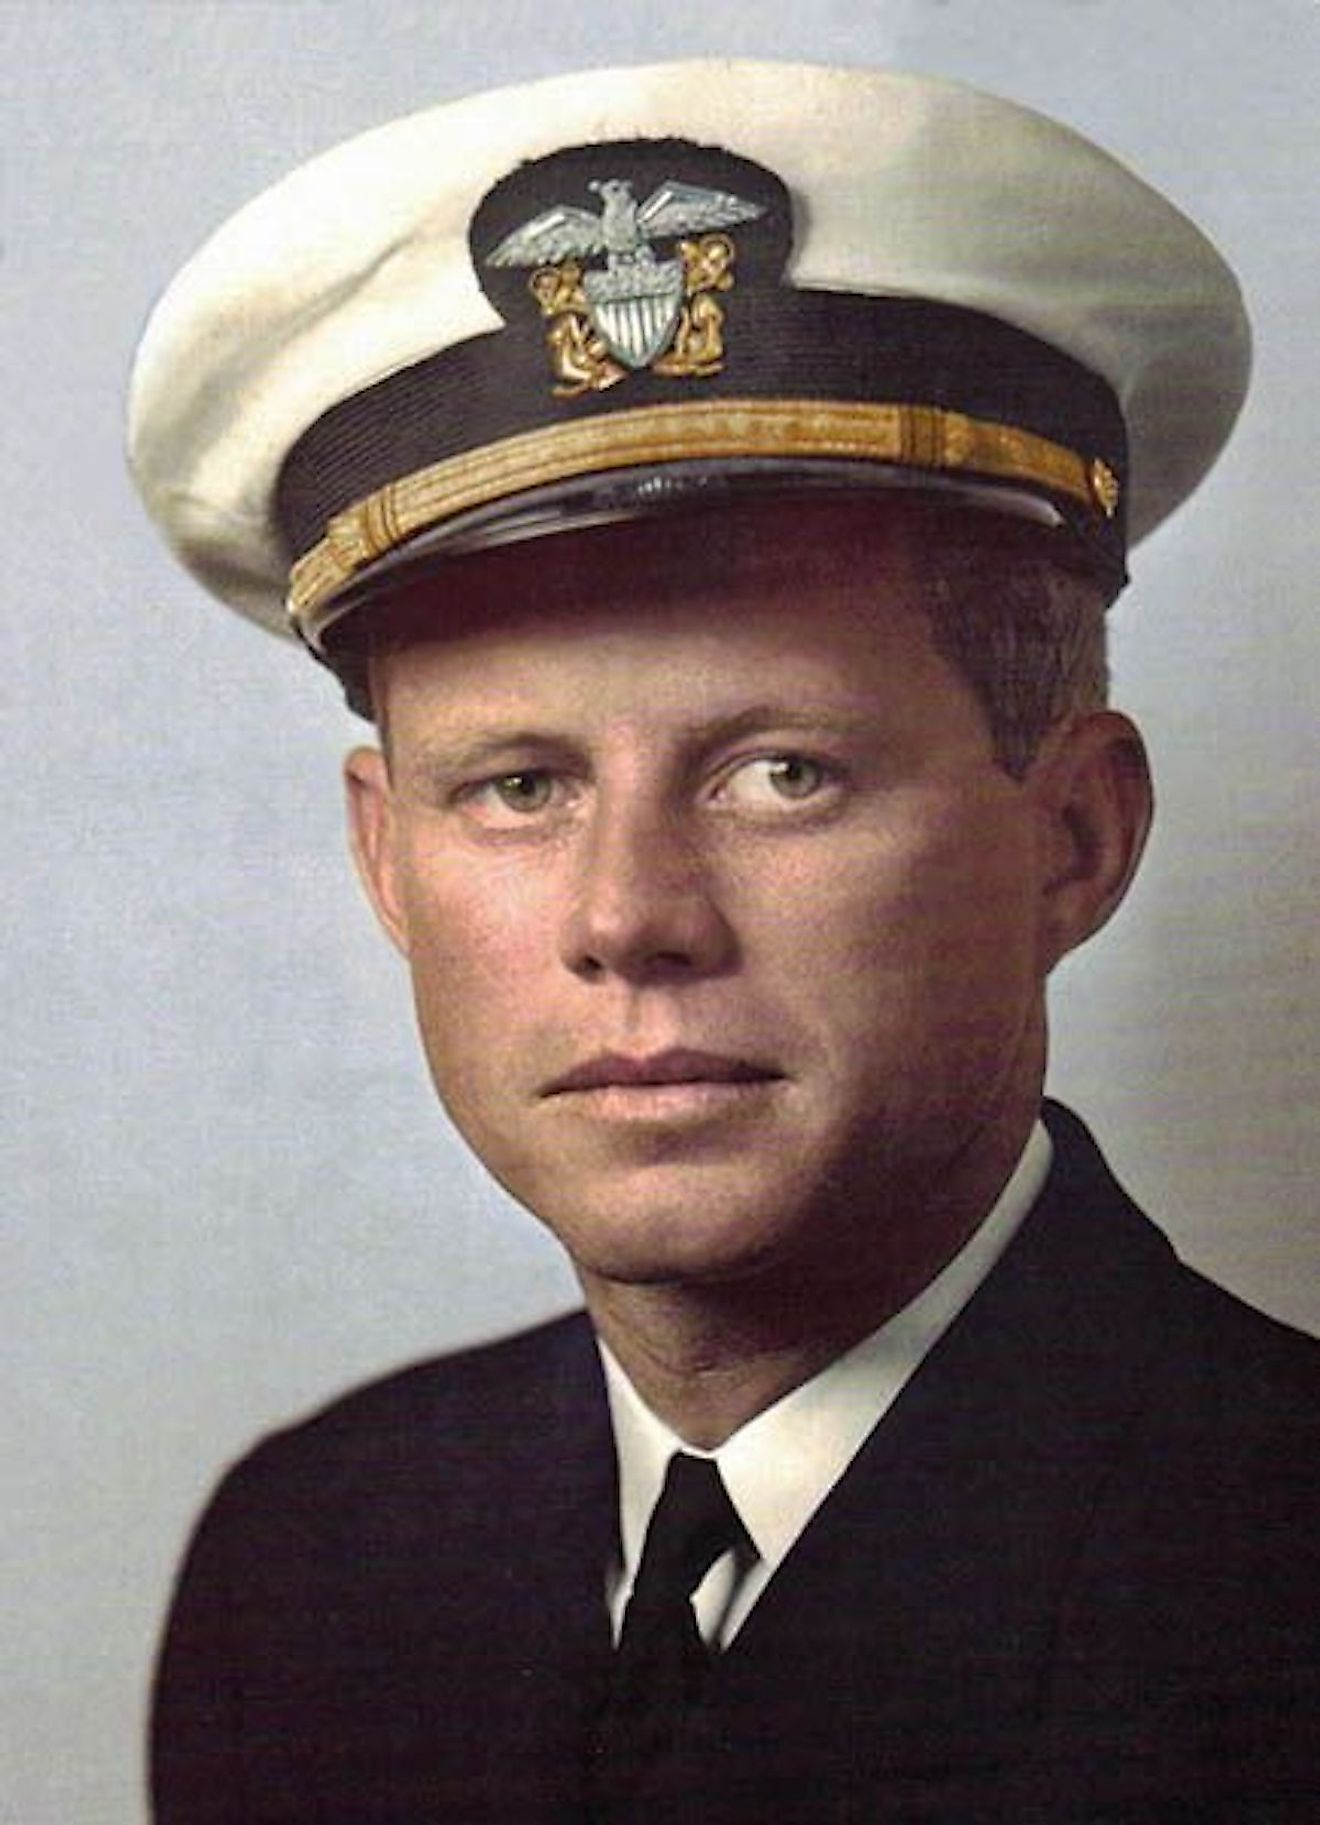 John F. Kennedy joined the Naval Reserve in 1941. Image credit: Pinterest.com